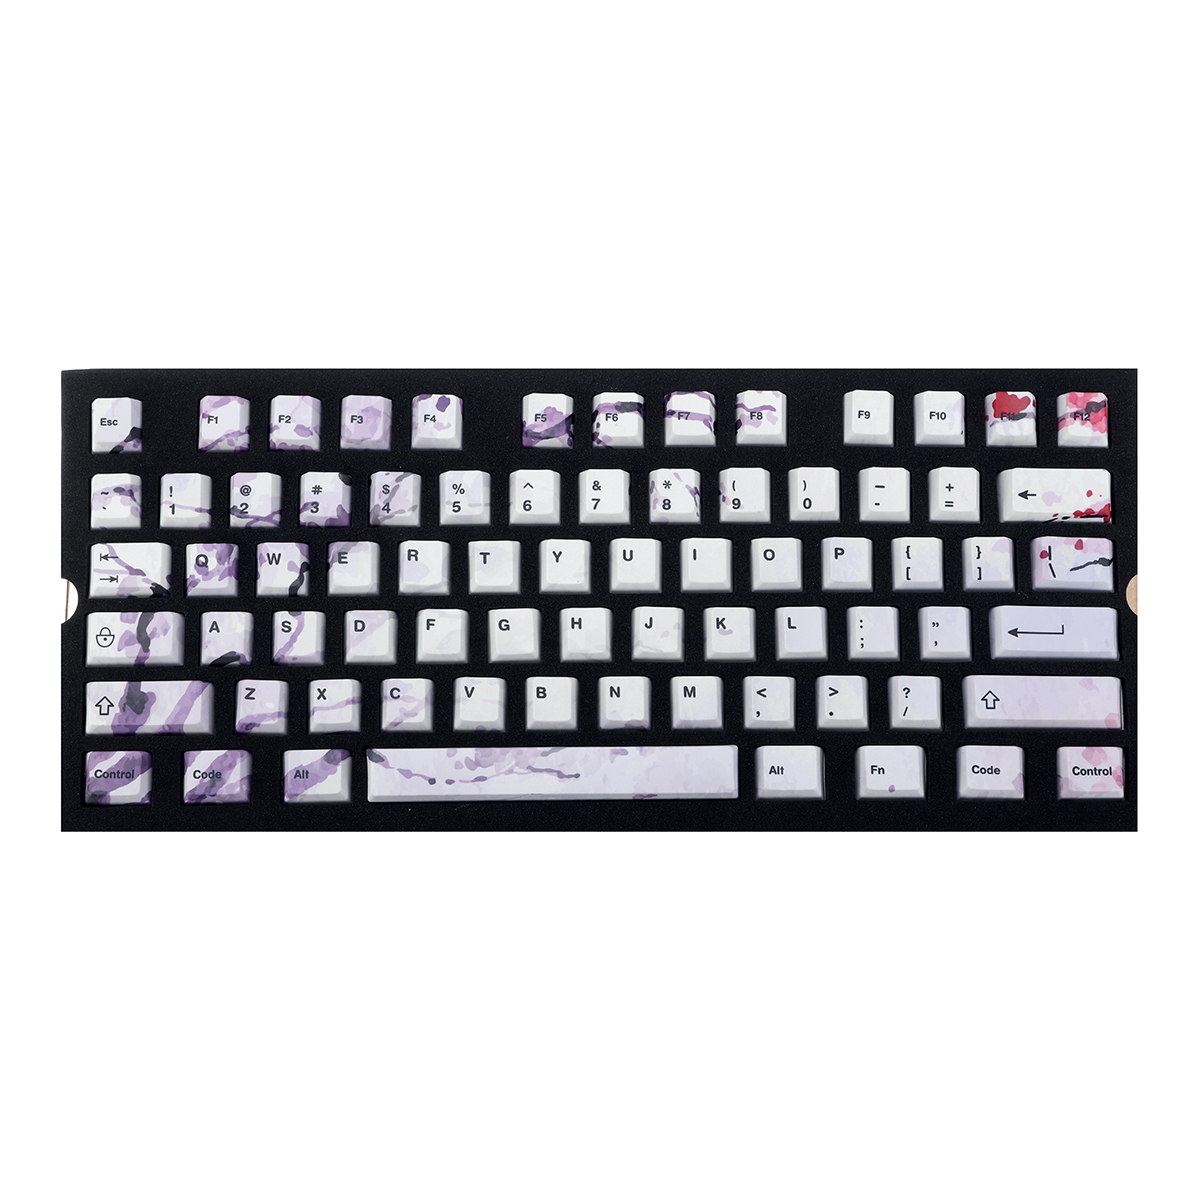 Color : Winter Day Keyboard keycaps 108 Keys Five PBT Thermal Keycaps for Mechanical Gaming Keyboard